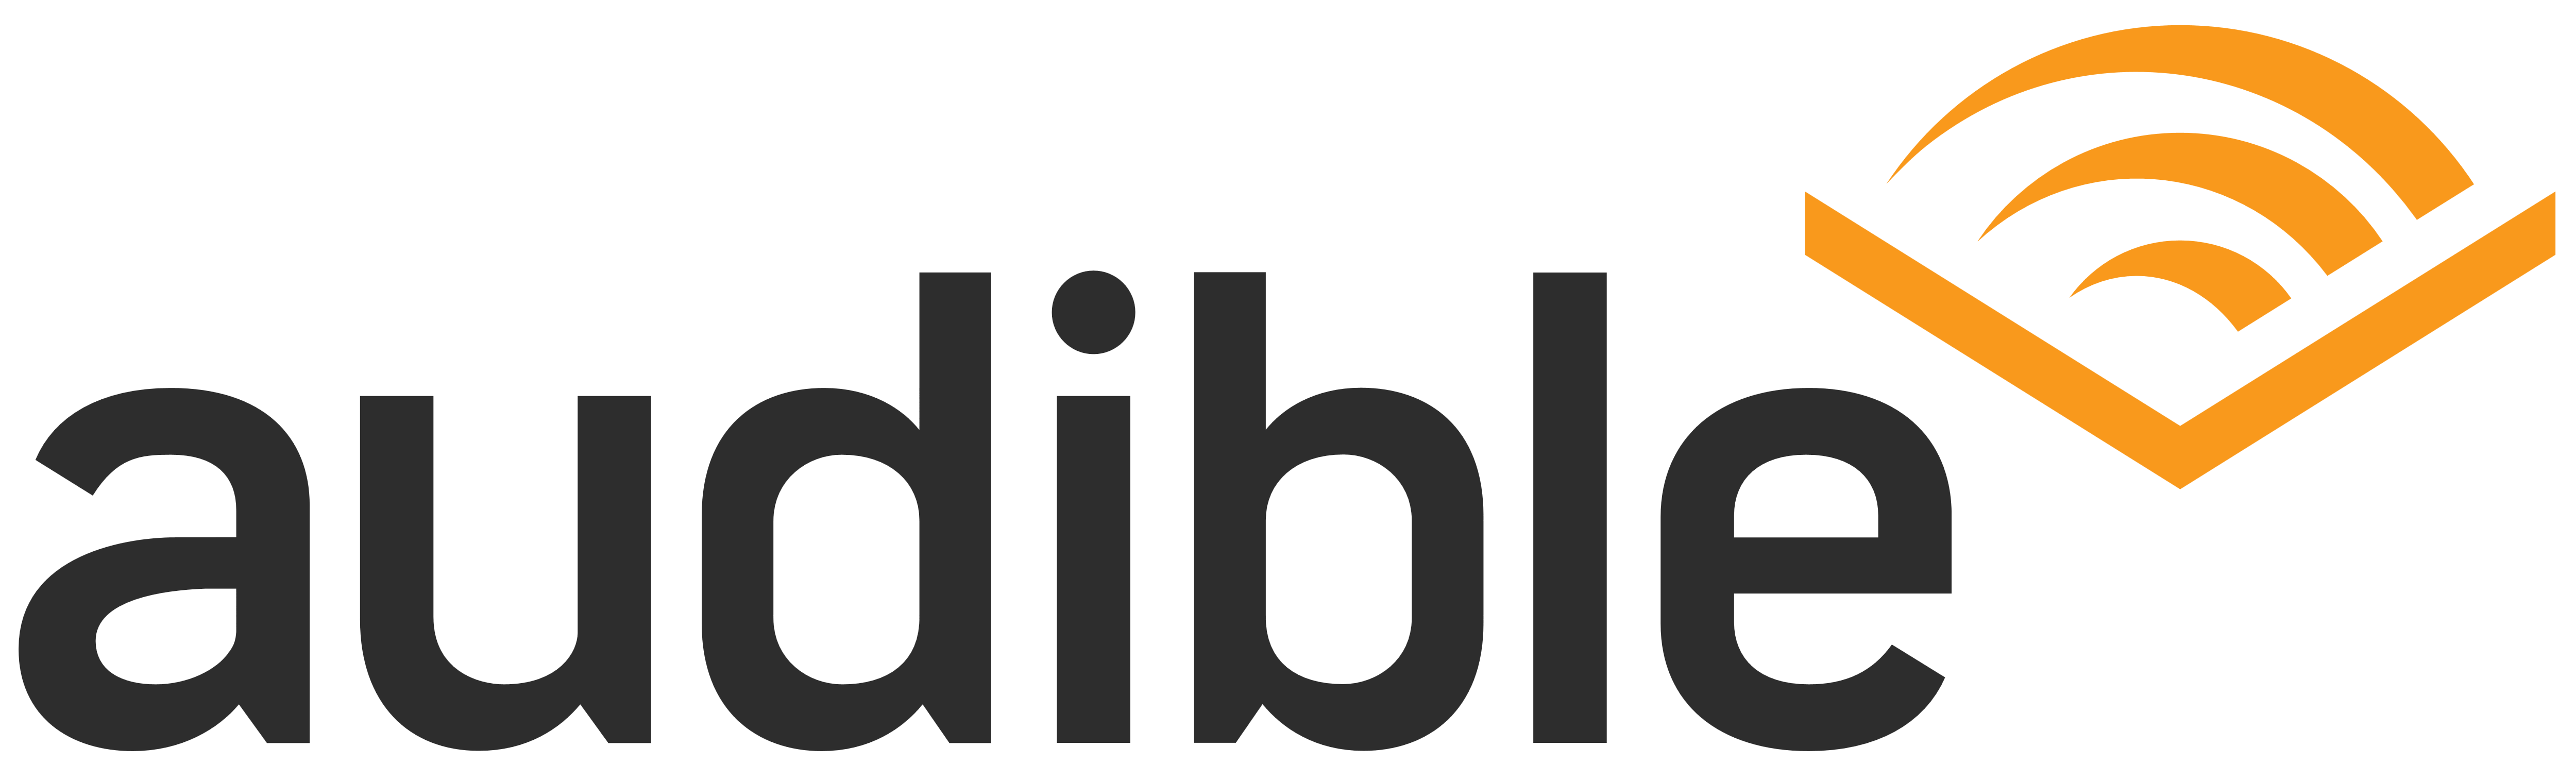 Audible – Logos Download